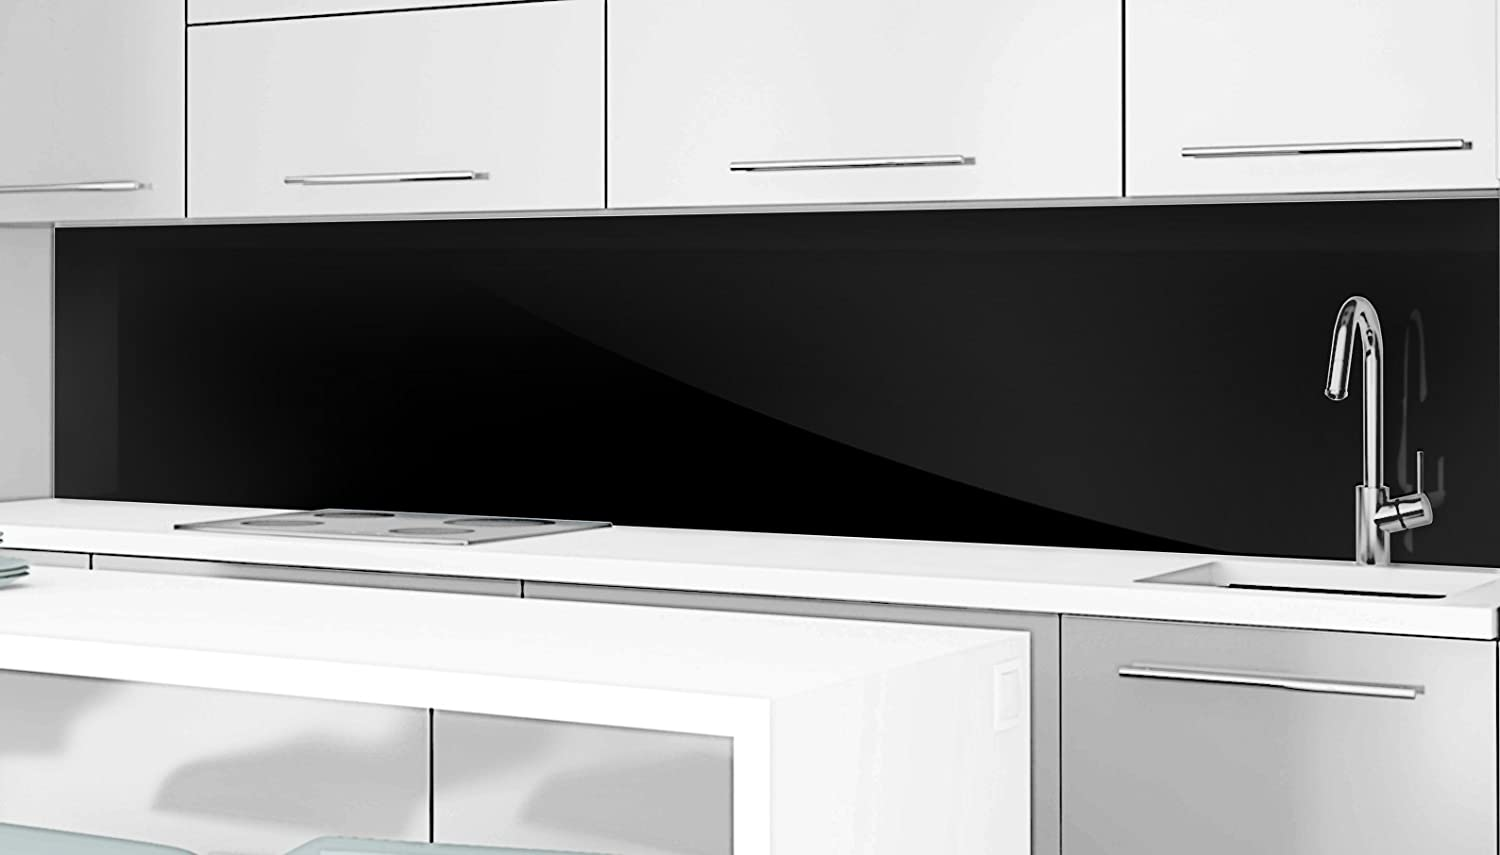 Black Gloss Coloured Acrylic Splashback - Scratch Resistant High Gloss Glass Effect - All Sizes up to 3 Meters Long (1 M, 1,000 Millimeters) Enhnance Your Rooms Ltd